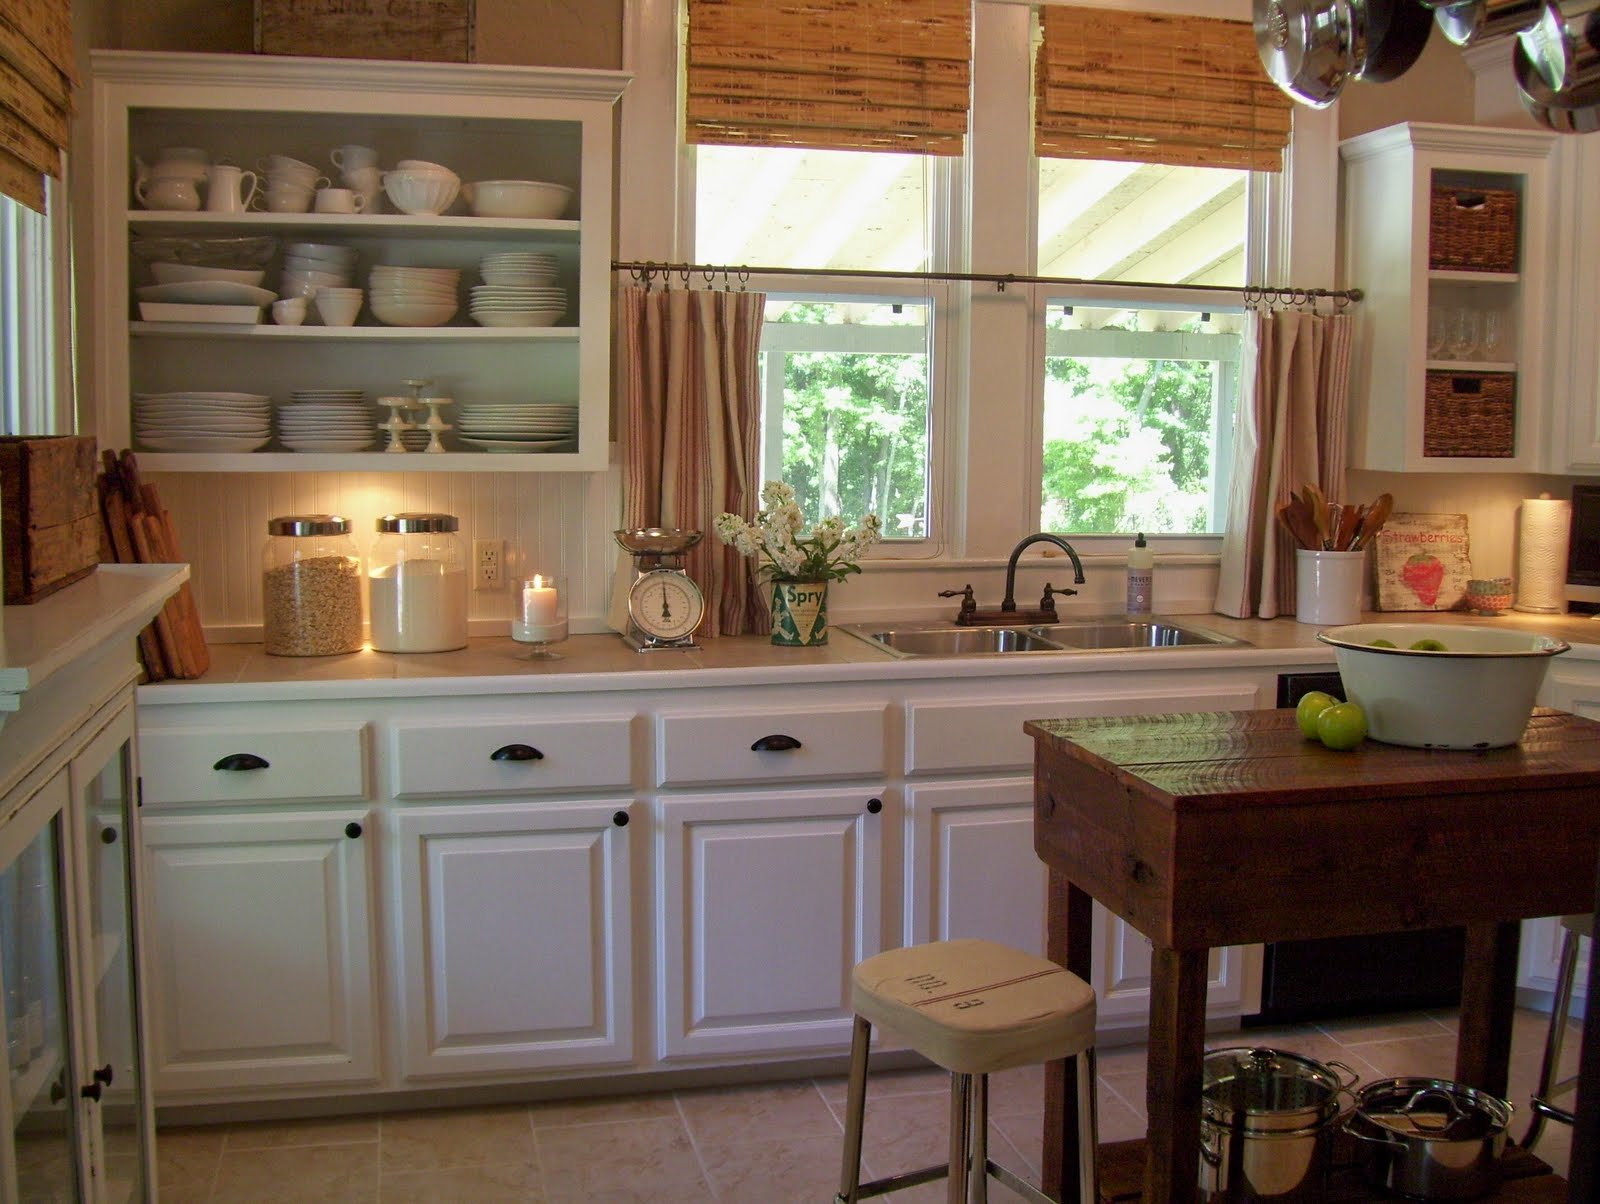 Trendy Old Red Kitchen Design Rustic Country Curtains The Small For Red Rustic Kitchen Curtains (View 18 of 20)